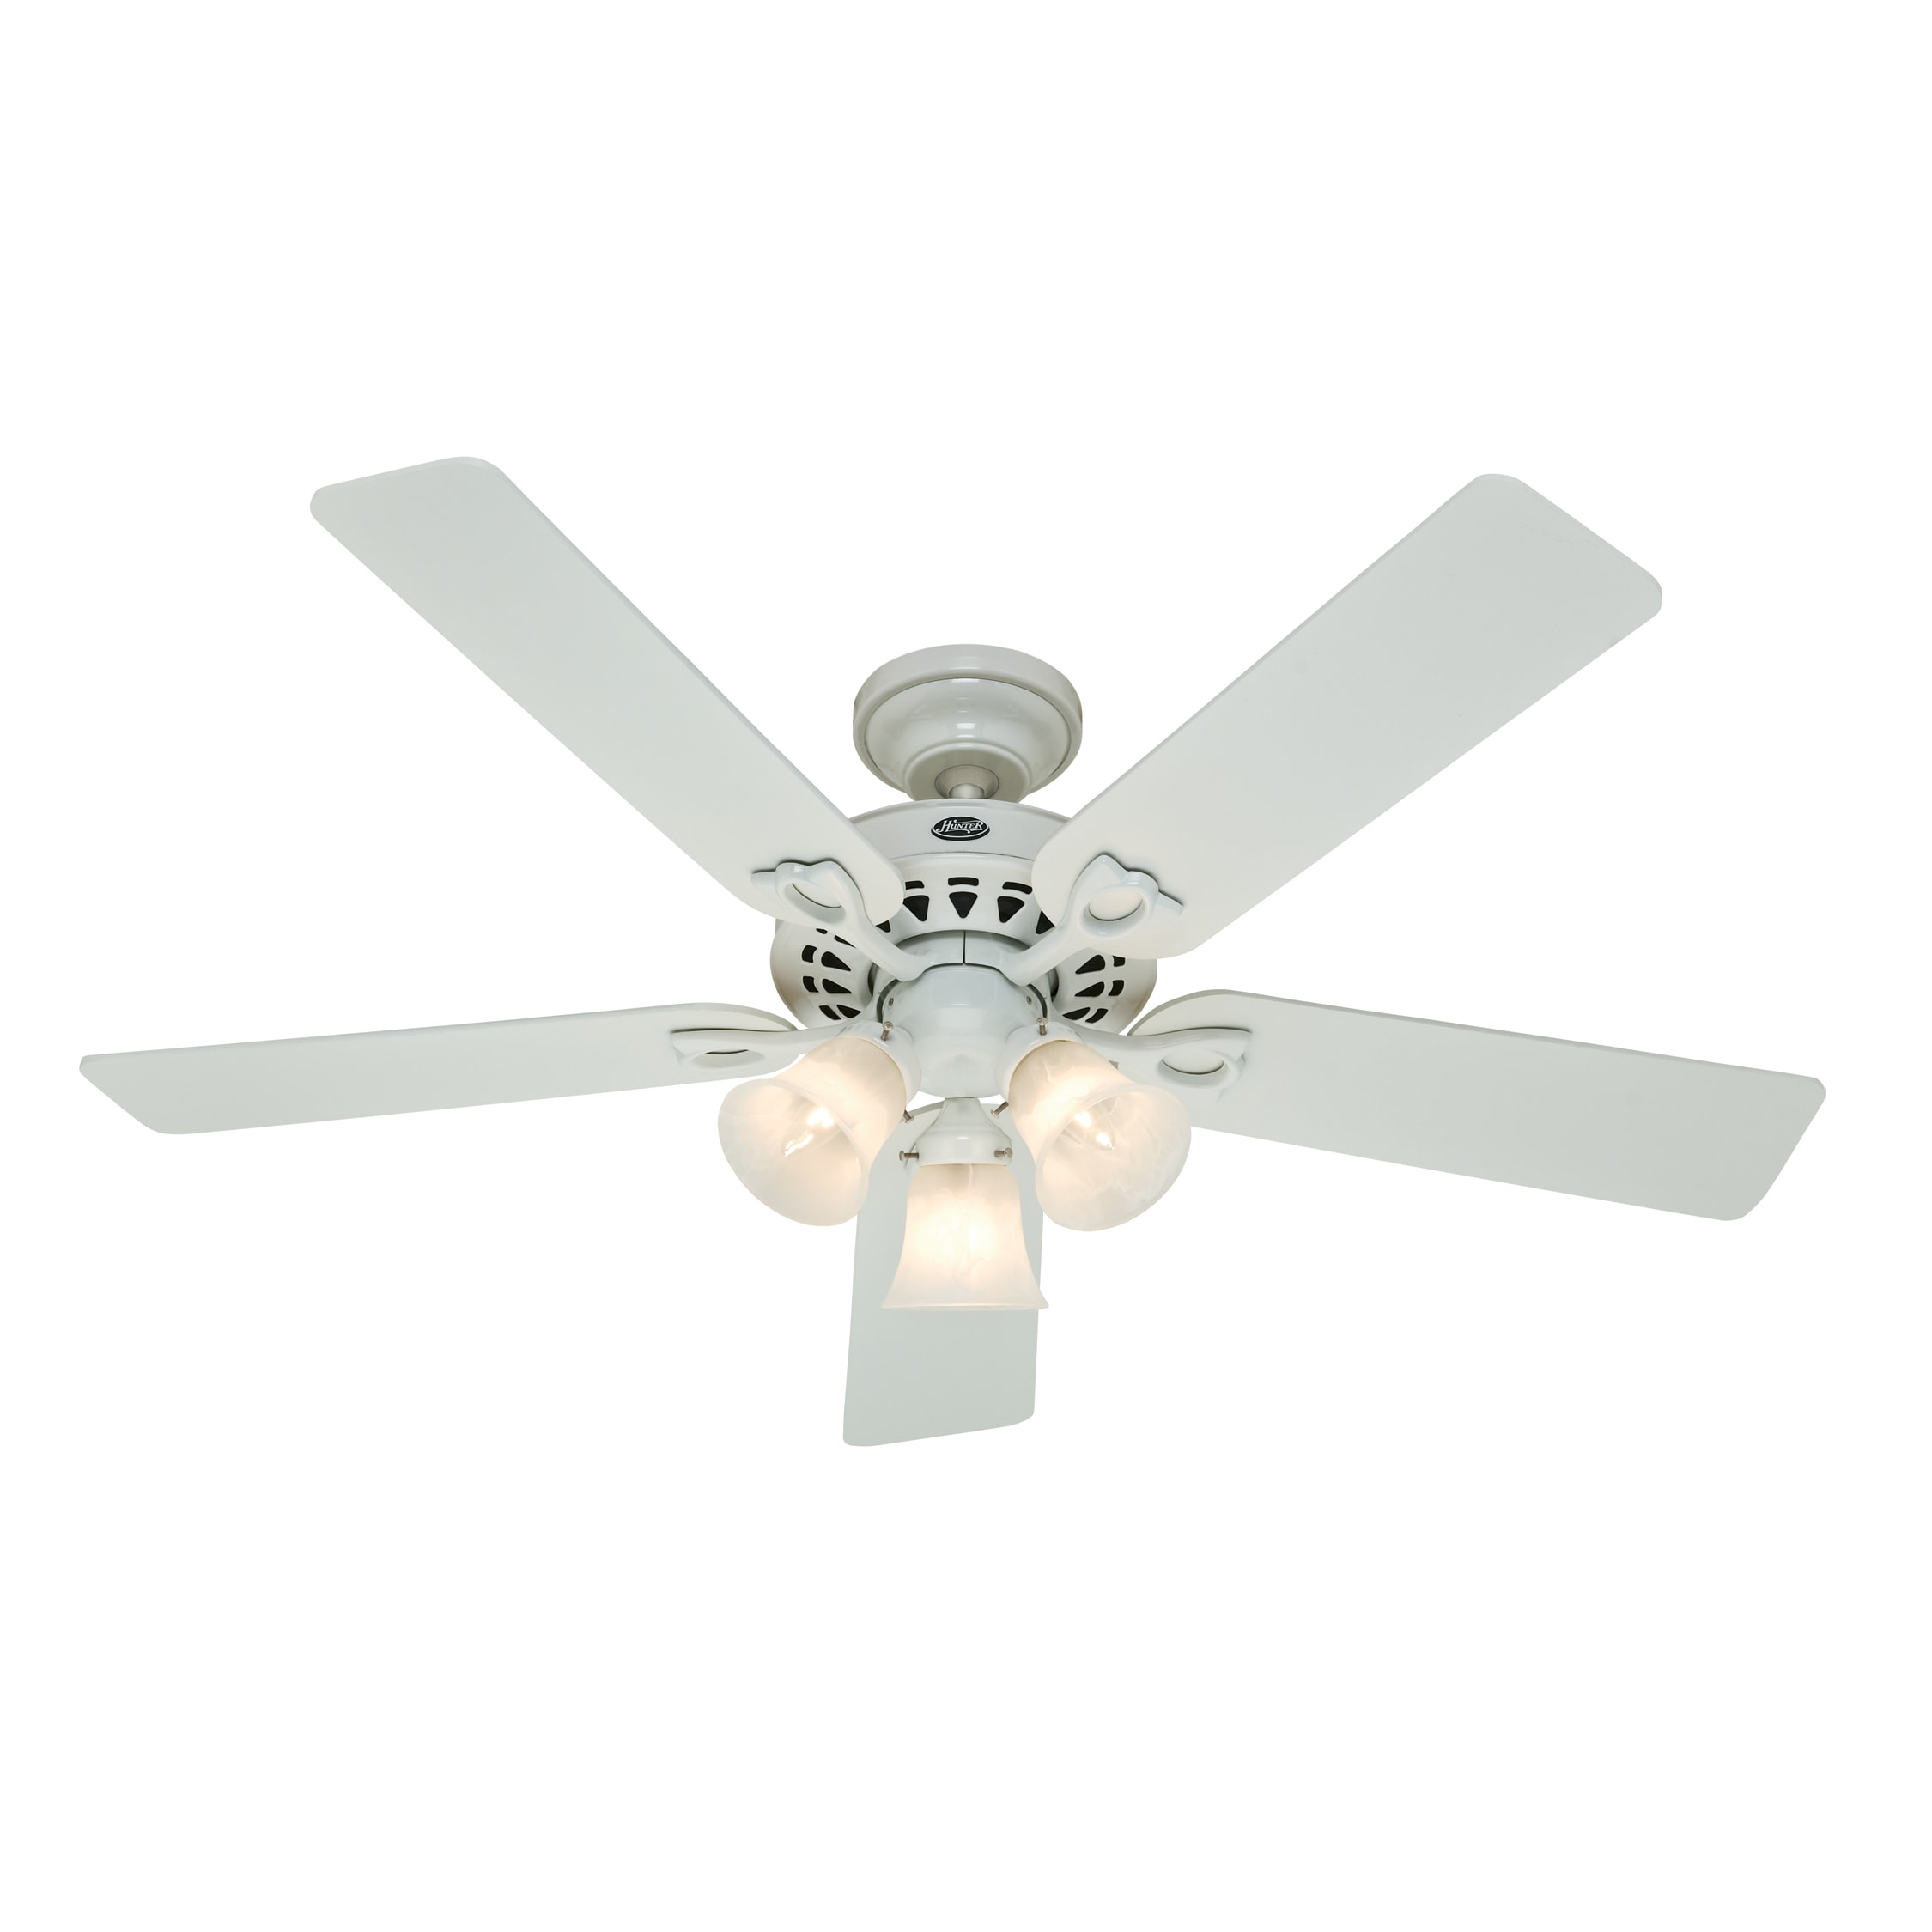 Hunter Fan 'Sontera' White 52-inch Ceiling Fan at Sears.com